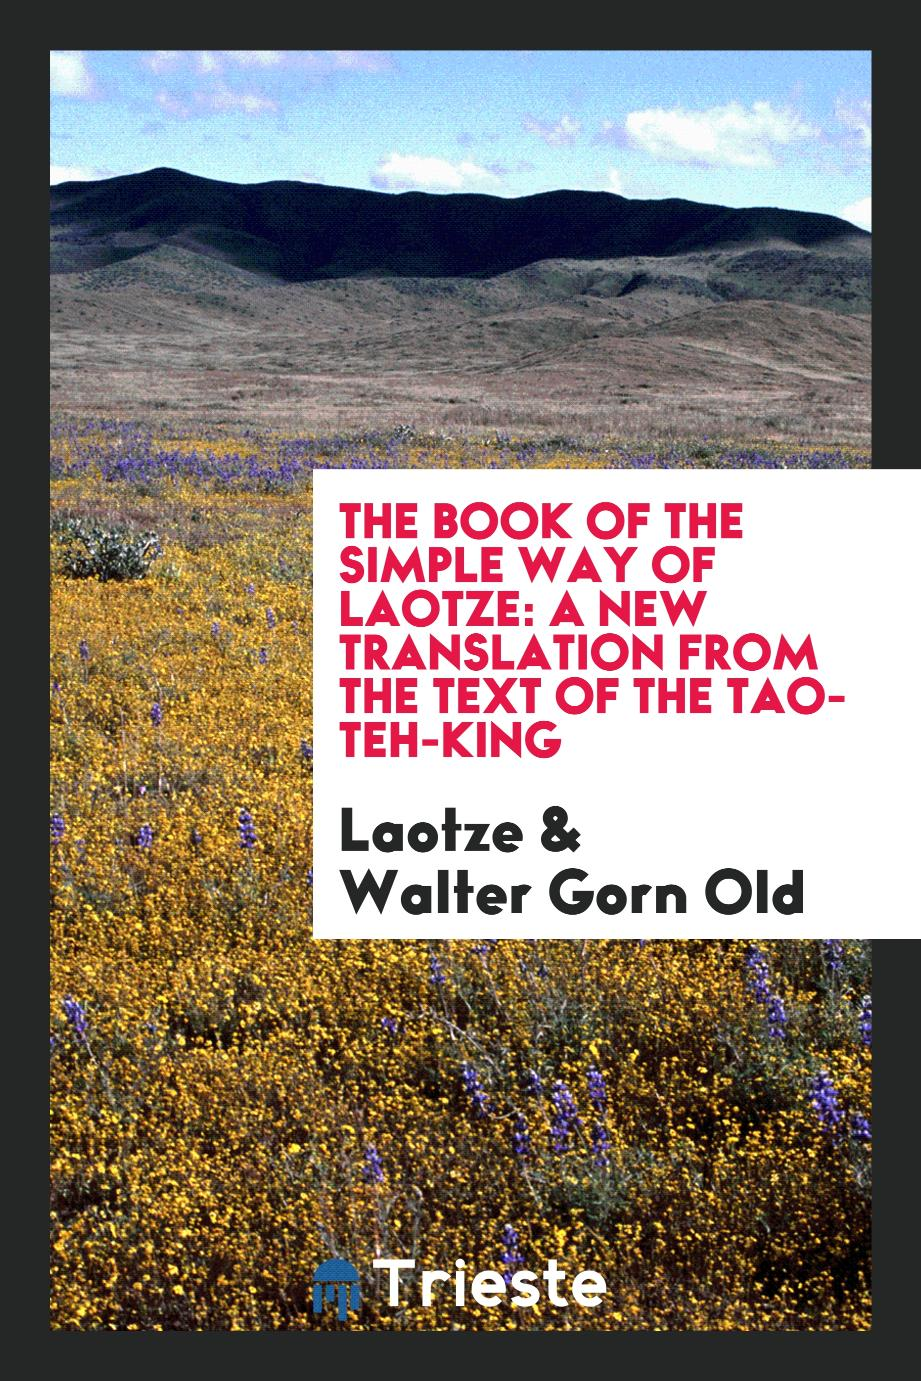 The book of the simple way of Laotze: a new translation from the text of the Tao-teh-king